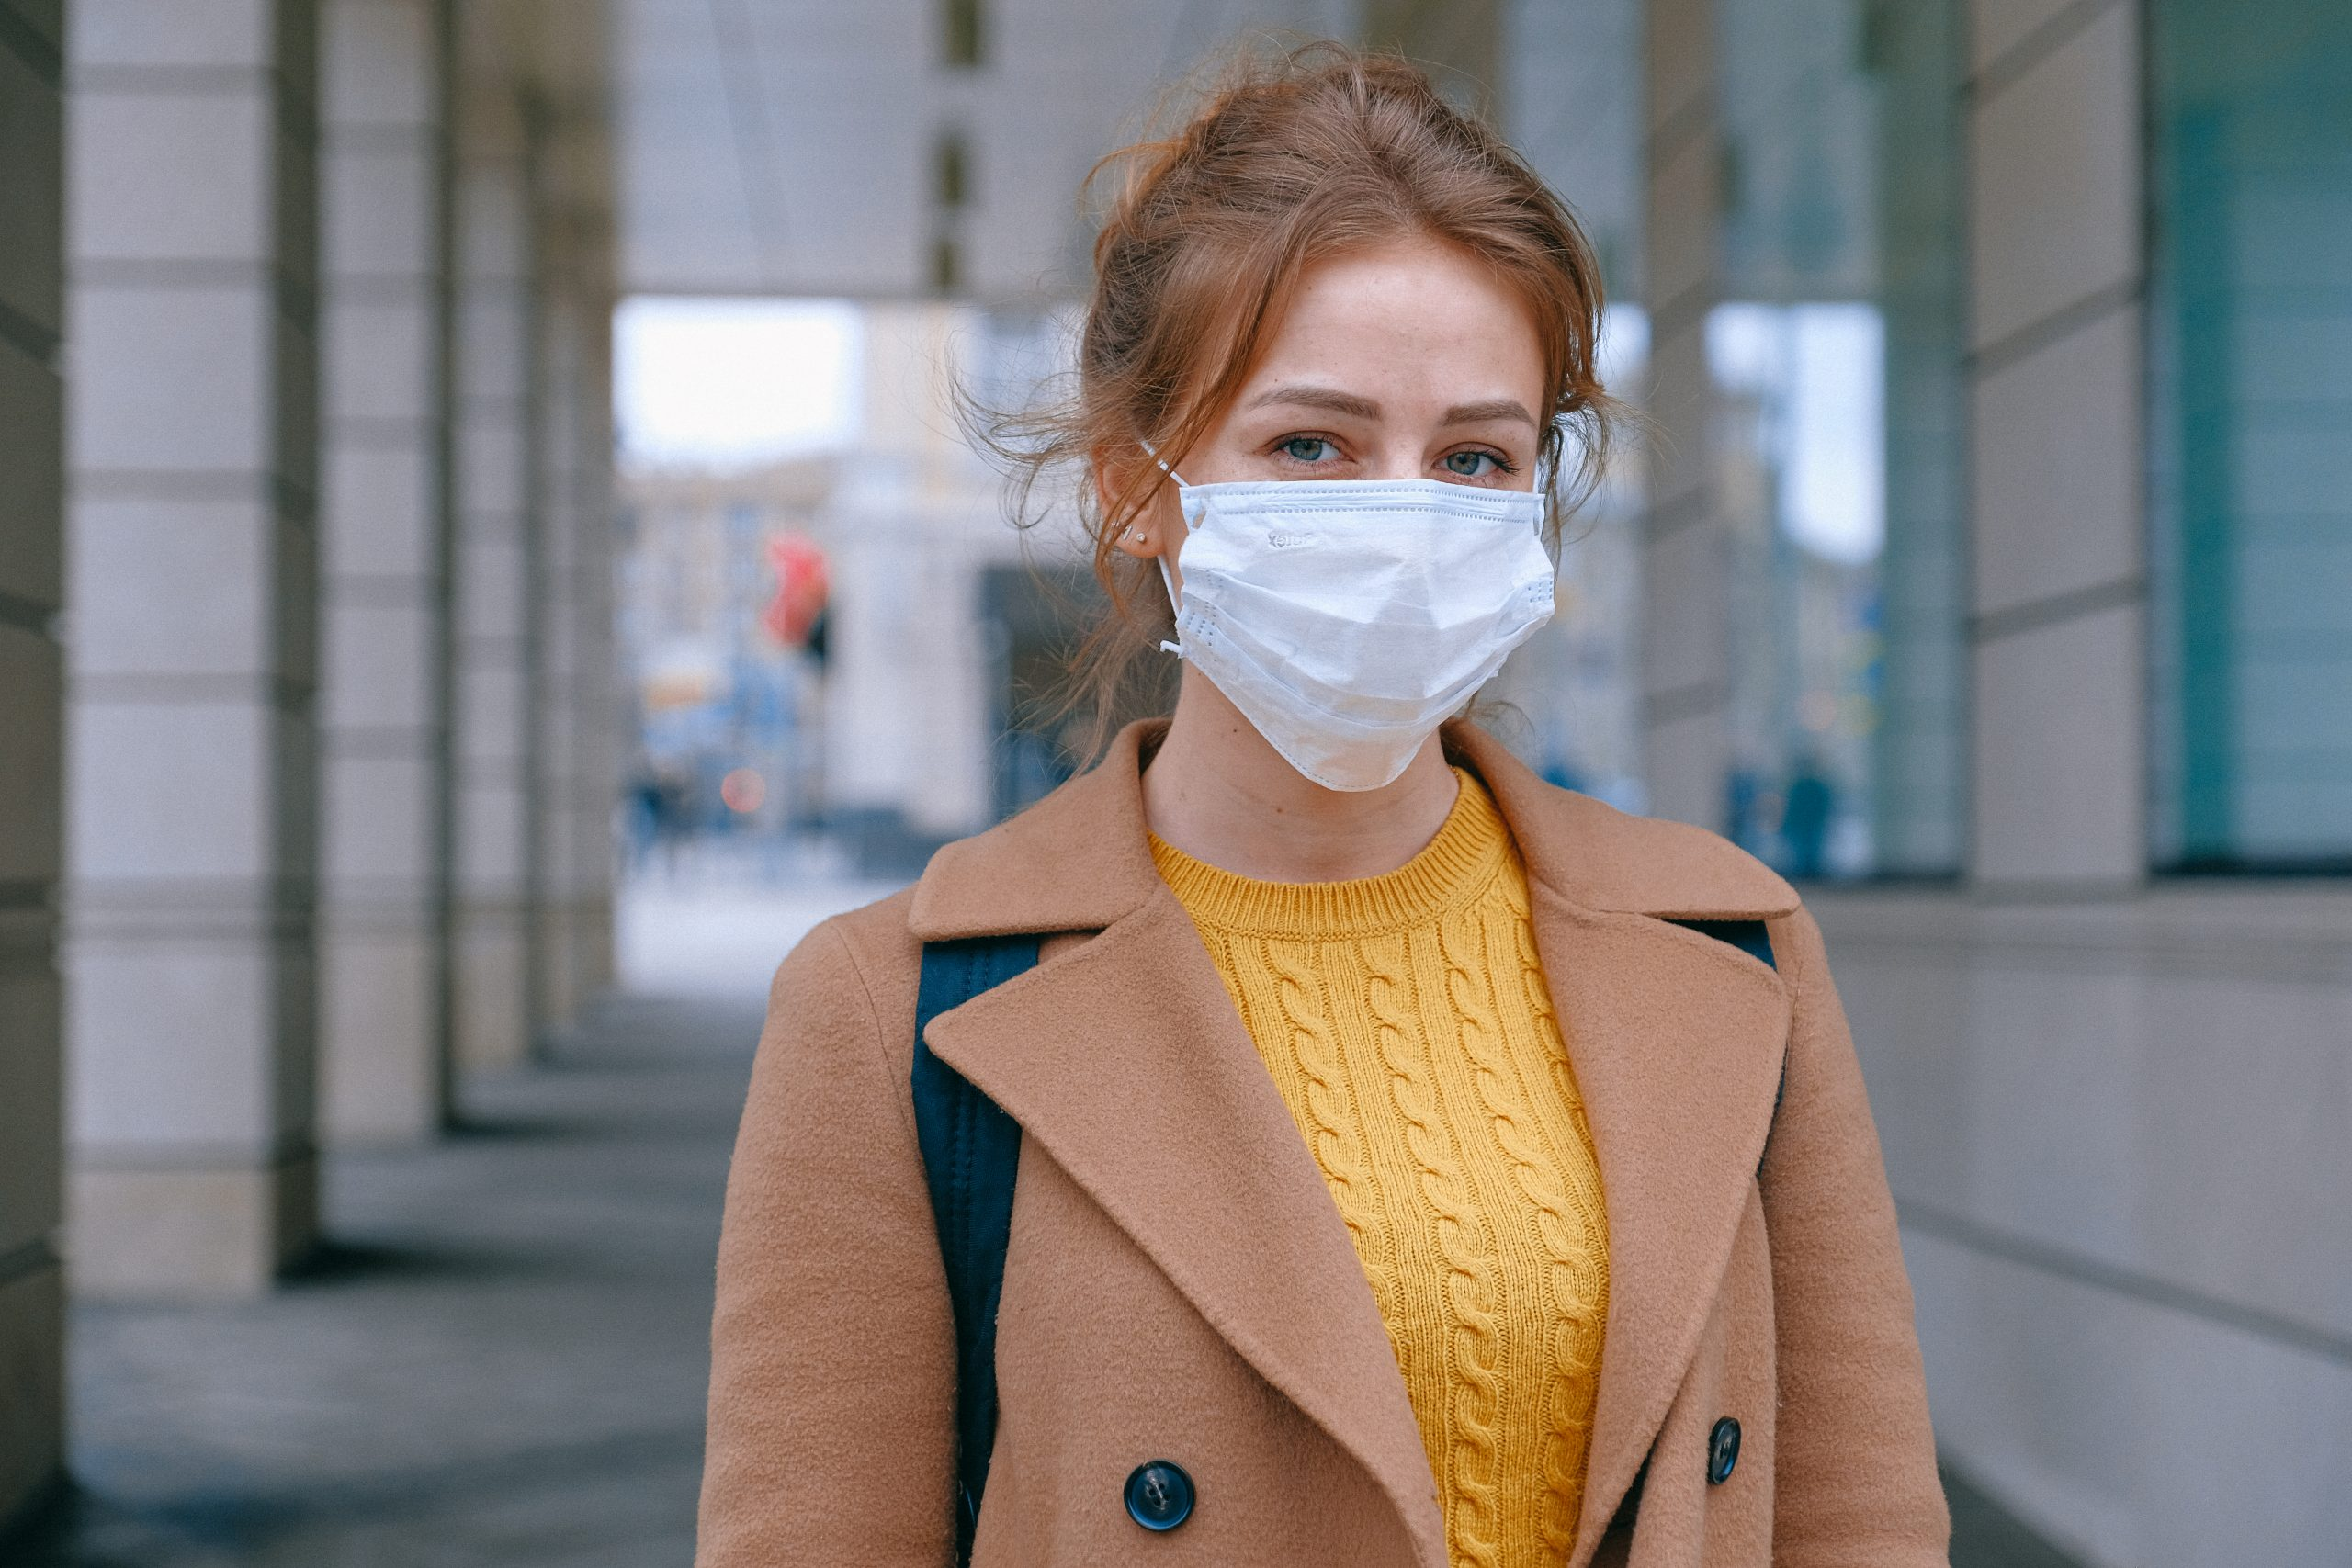 coronavirus anxiety, girl wearing mask